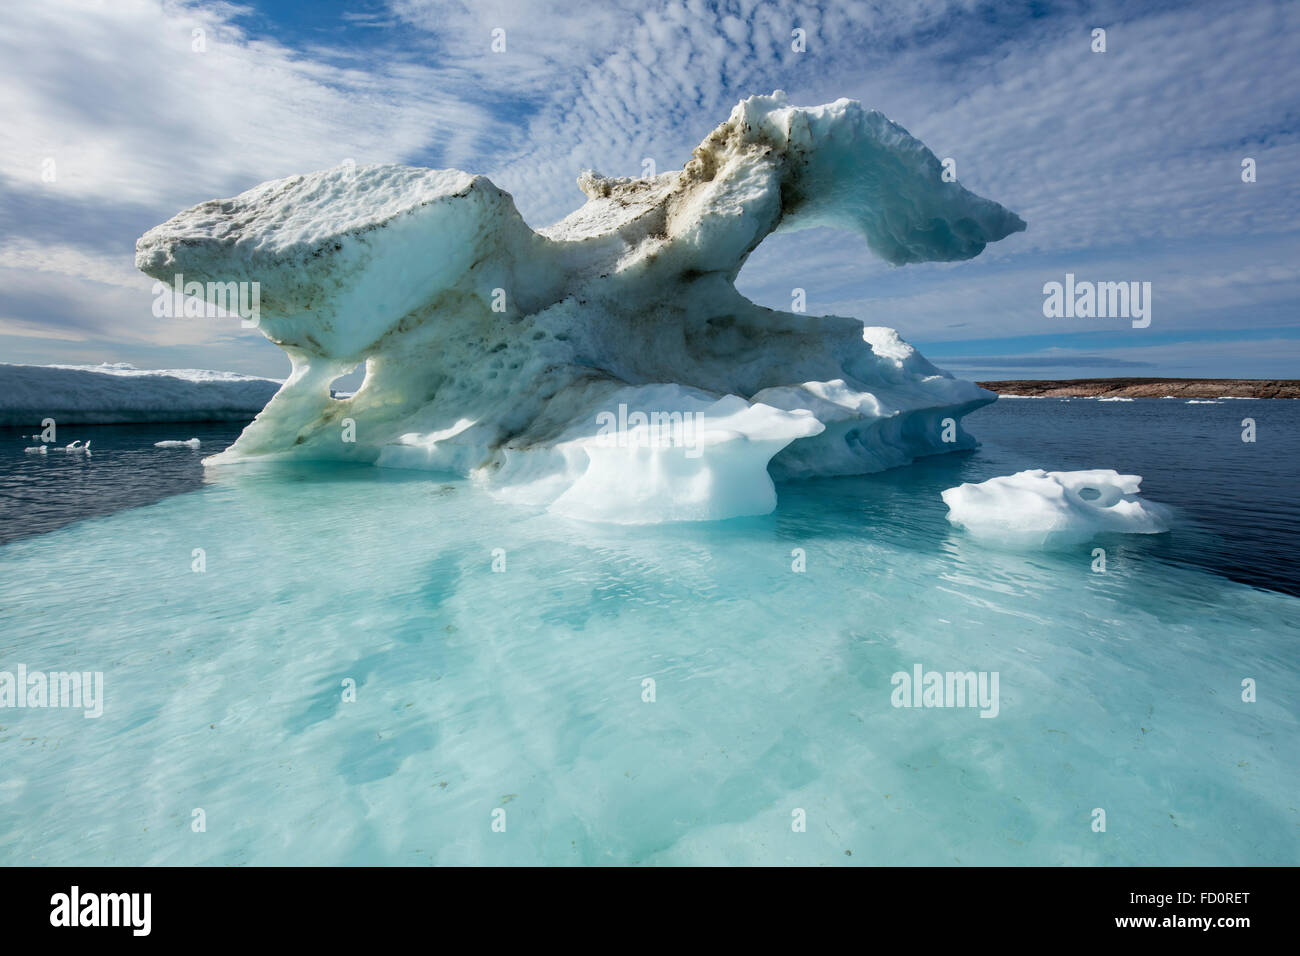 Canada, Nunavut Territory, Repulse Bay, Melting icebergs in Harbour Islands in Hudson Bay just south of arctic circle Stock Photo